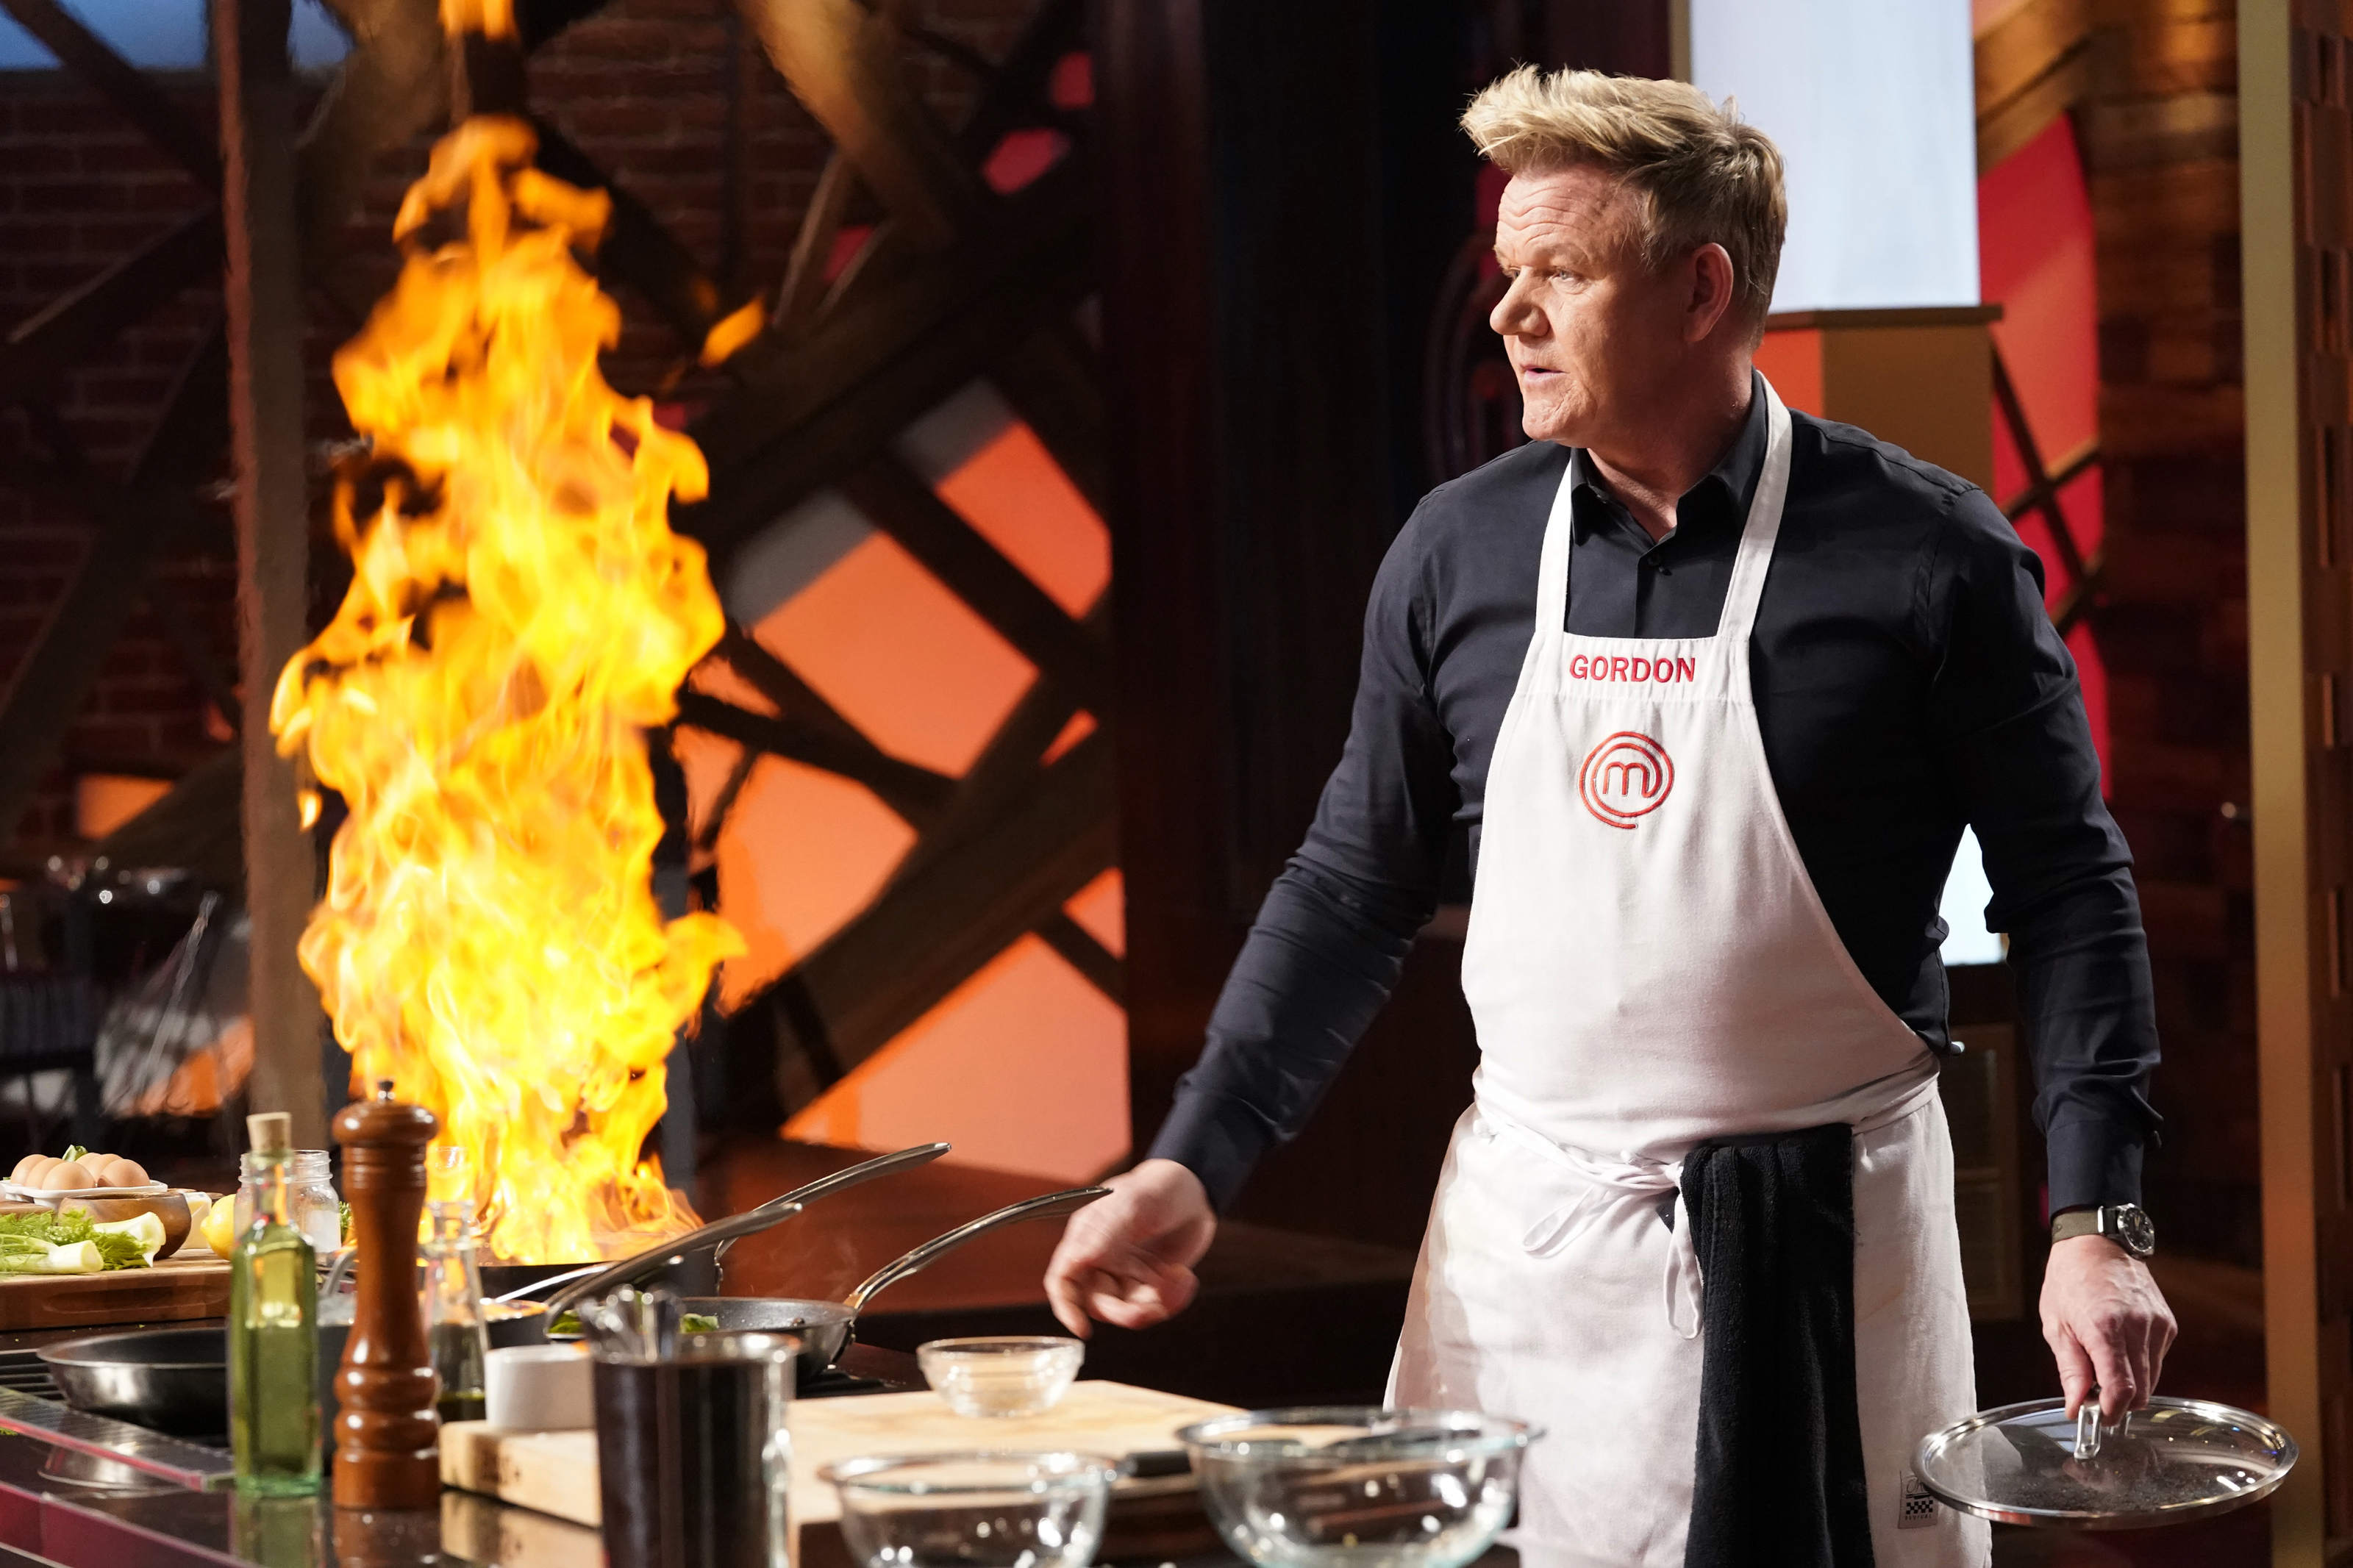 The new MASTERCHEF restaurant will offer an immersive dining